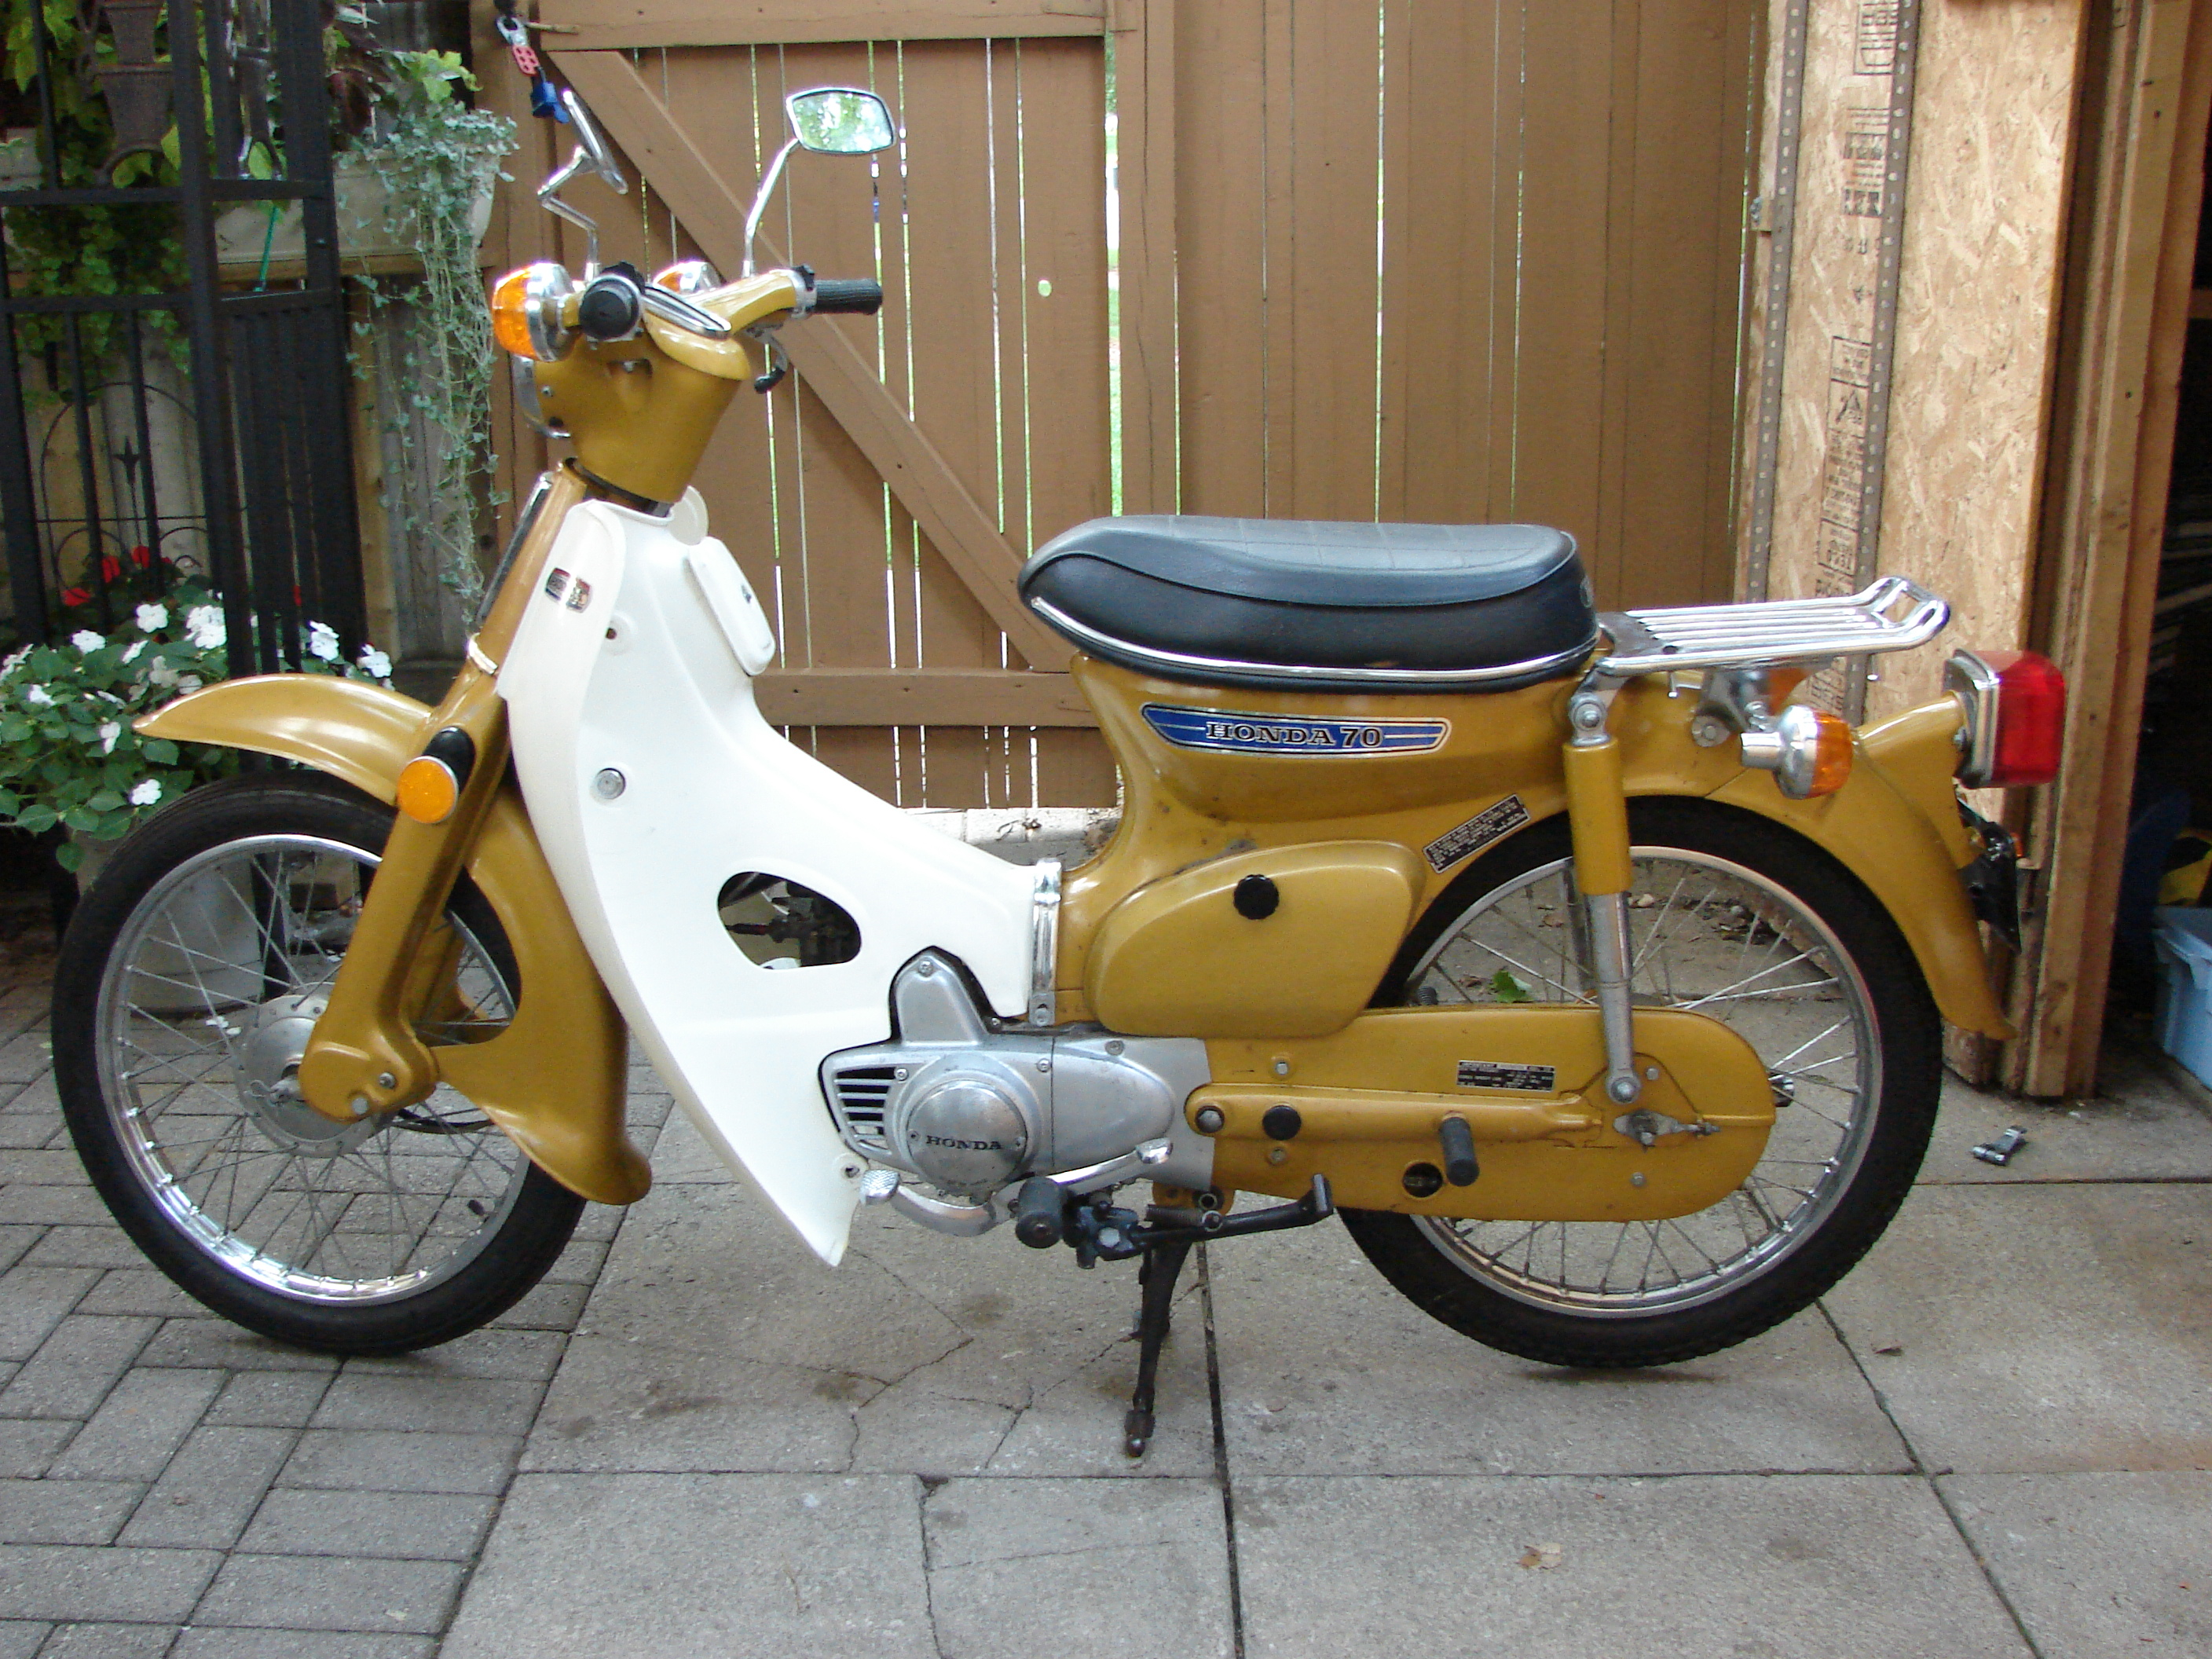 Fyl Cfehu Puyzr Rect additionally D Brown White Wires Cb Honda Cb Cl moreover Dscn Op X additionally Honda Ct likewise Part  plete Wiring Diagrams Of Honda Ct. on honda ct90 wiring diagram